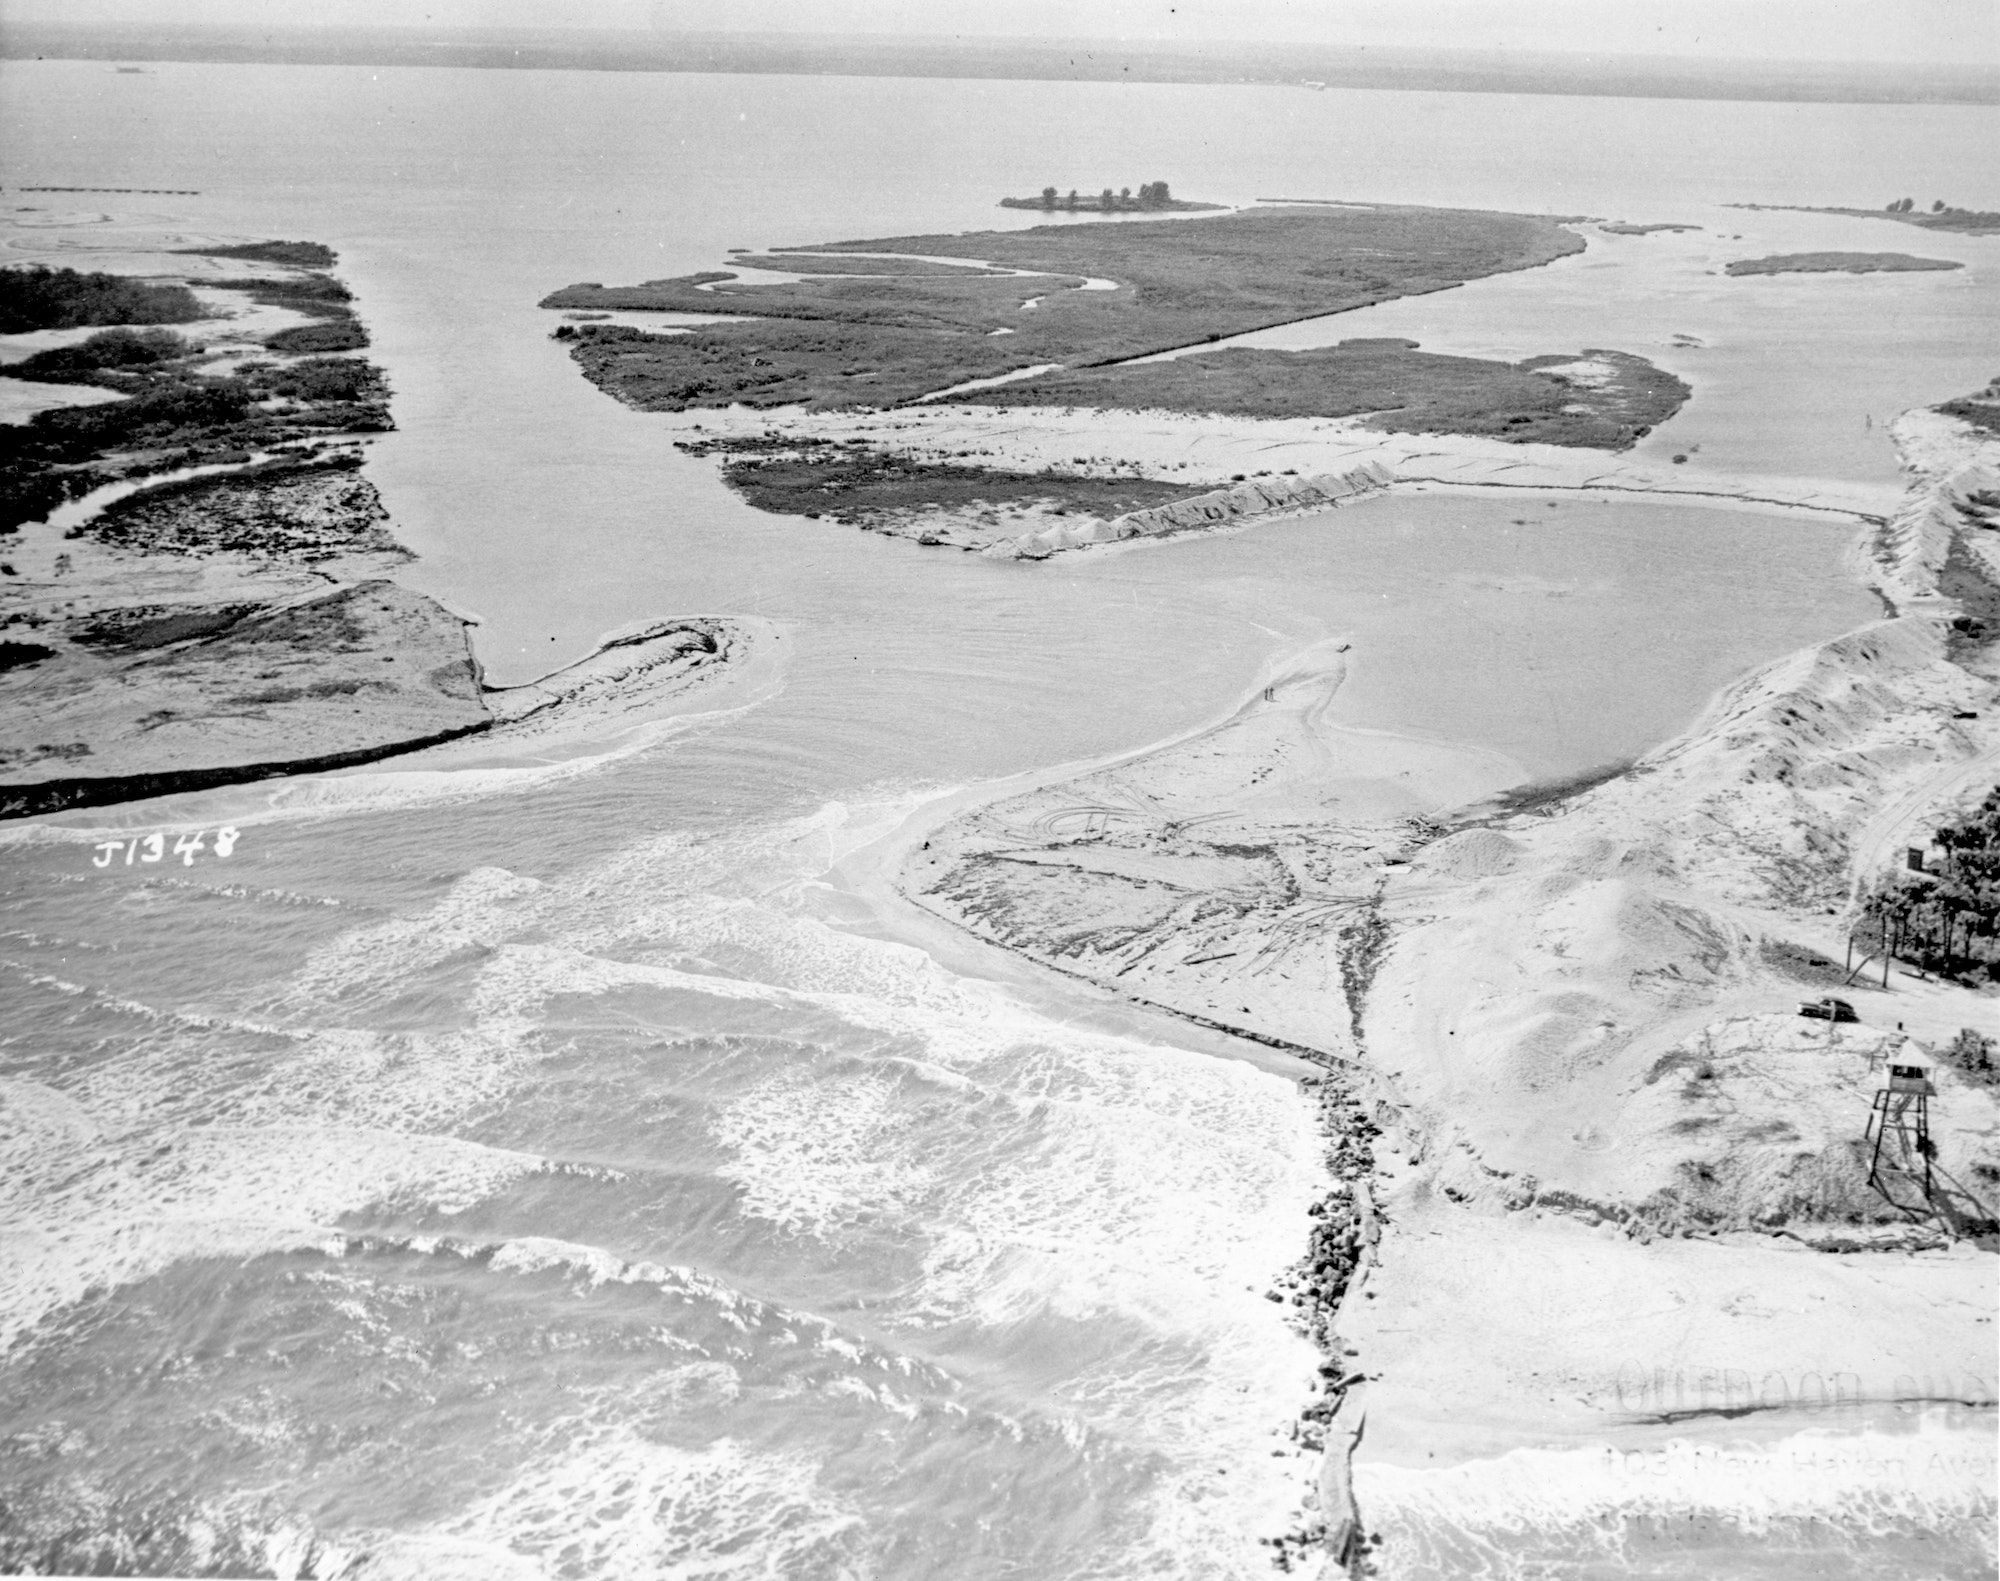 Aerial view of the open inlet from 1948 showing the connection of the Indian River and Atlantic Ocean